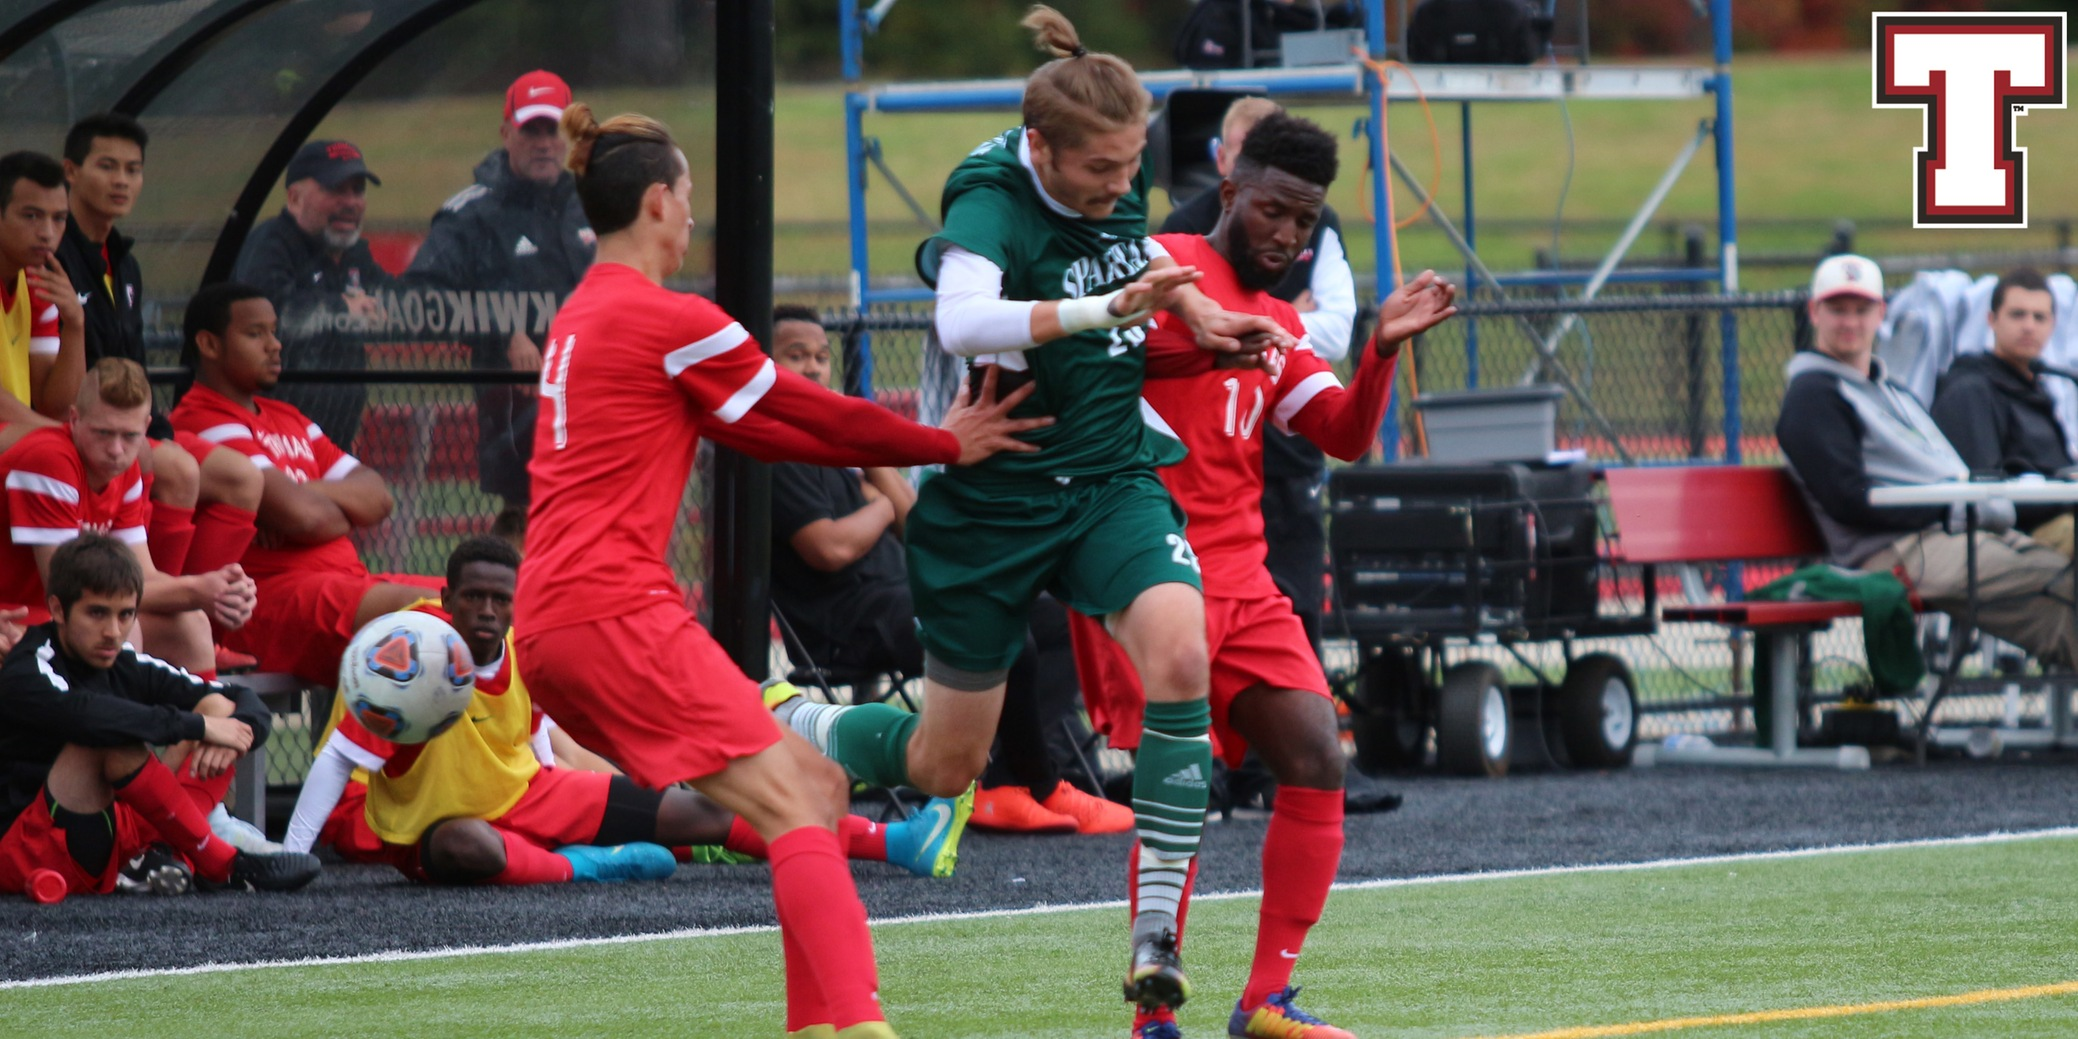 Terriers' Comeback Falls Short to Castleton, 3-2